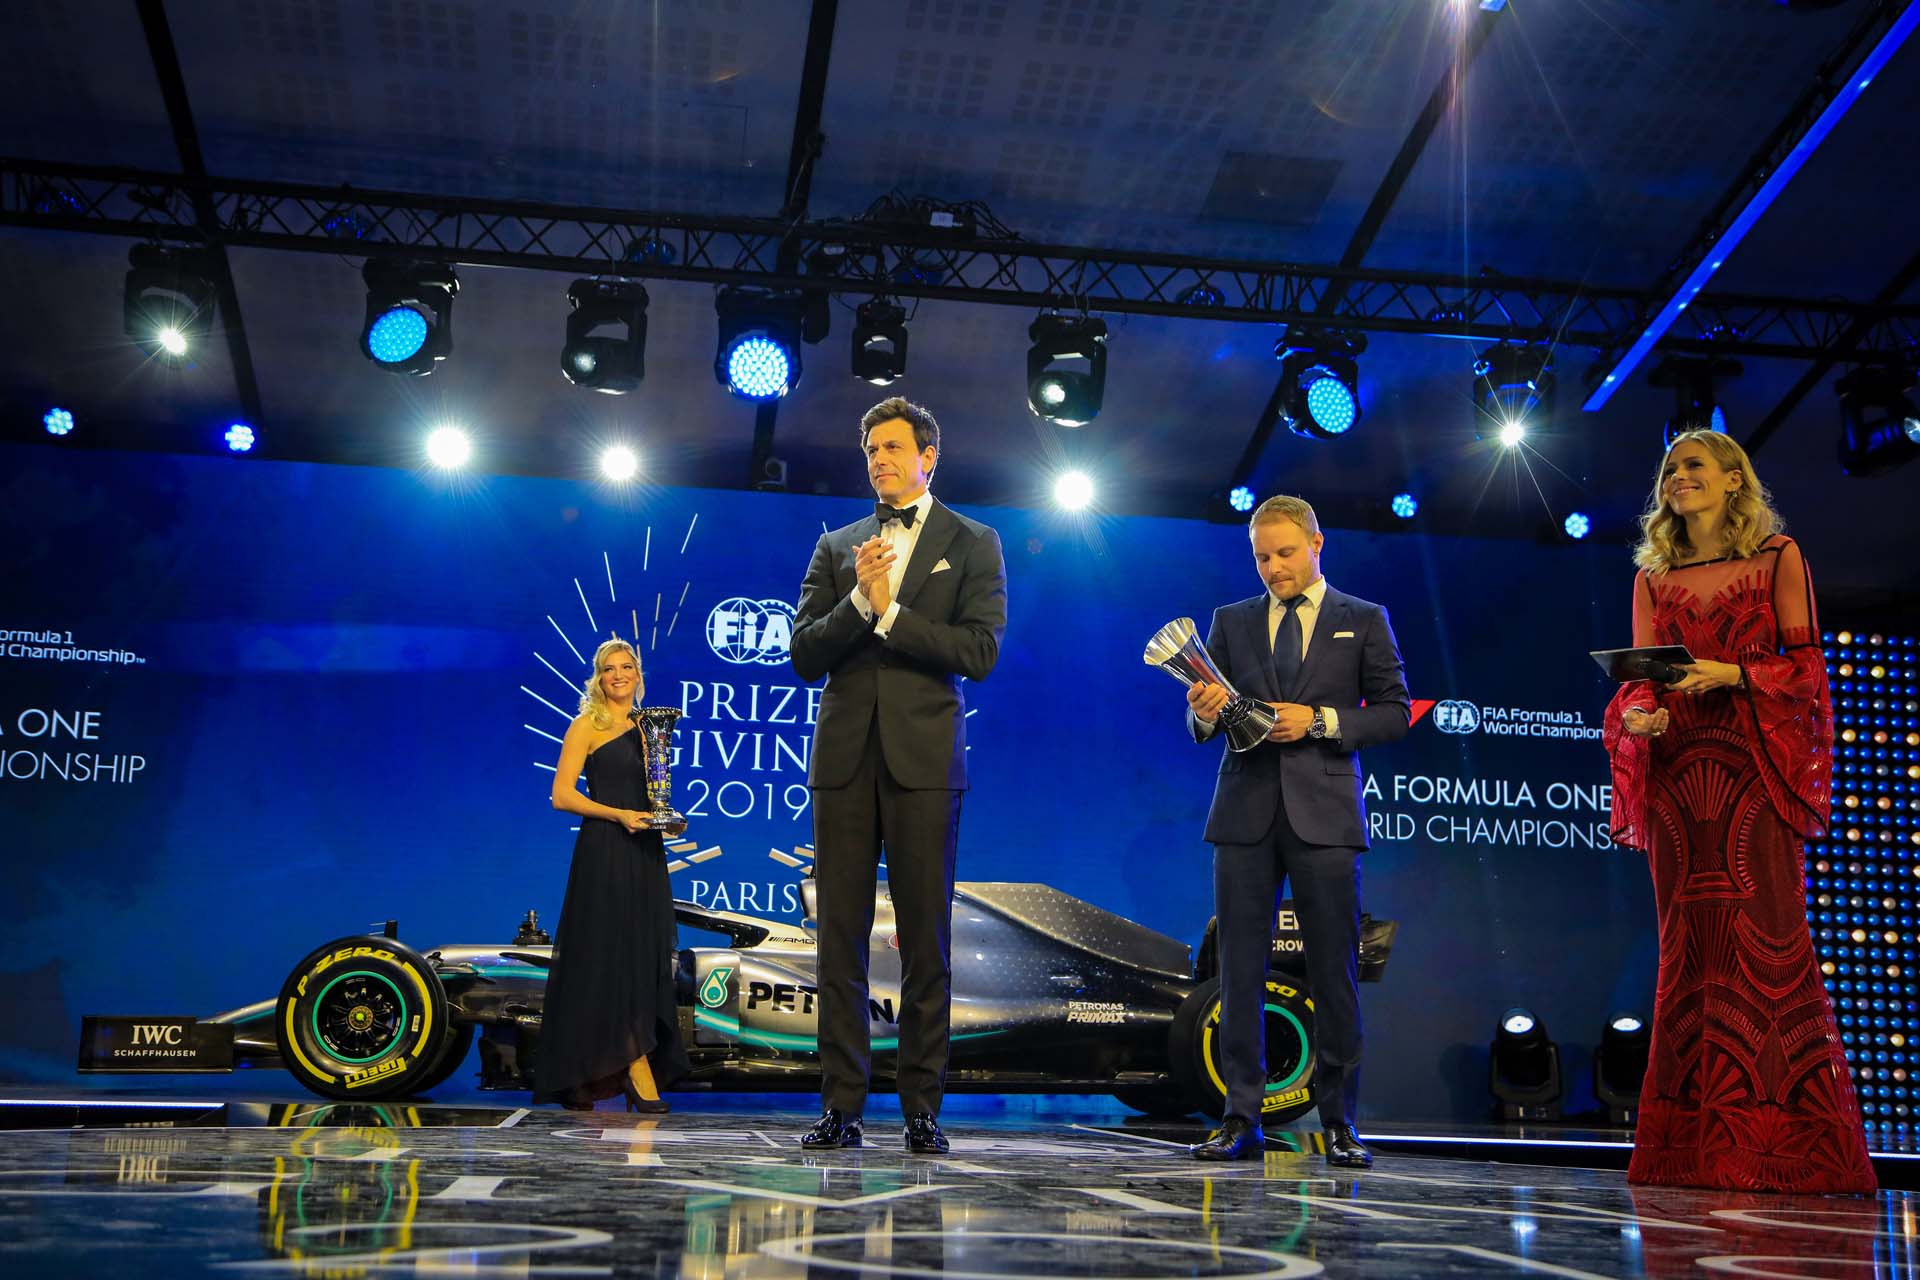 2019 FIA Prize Giving Gala